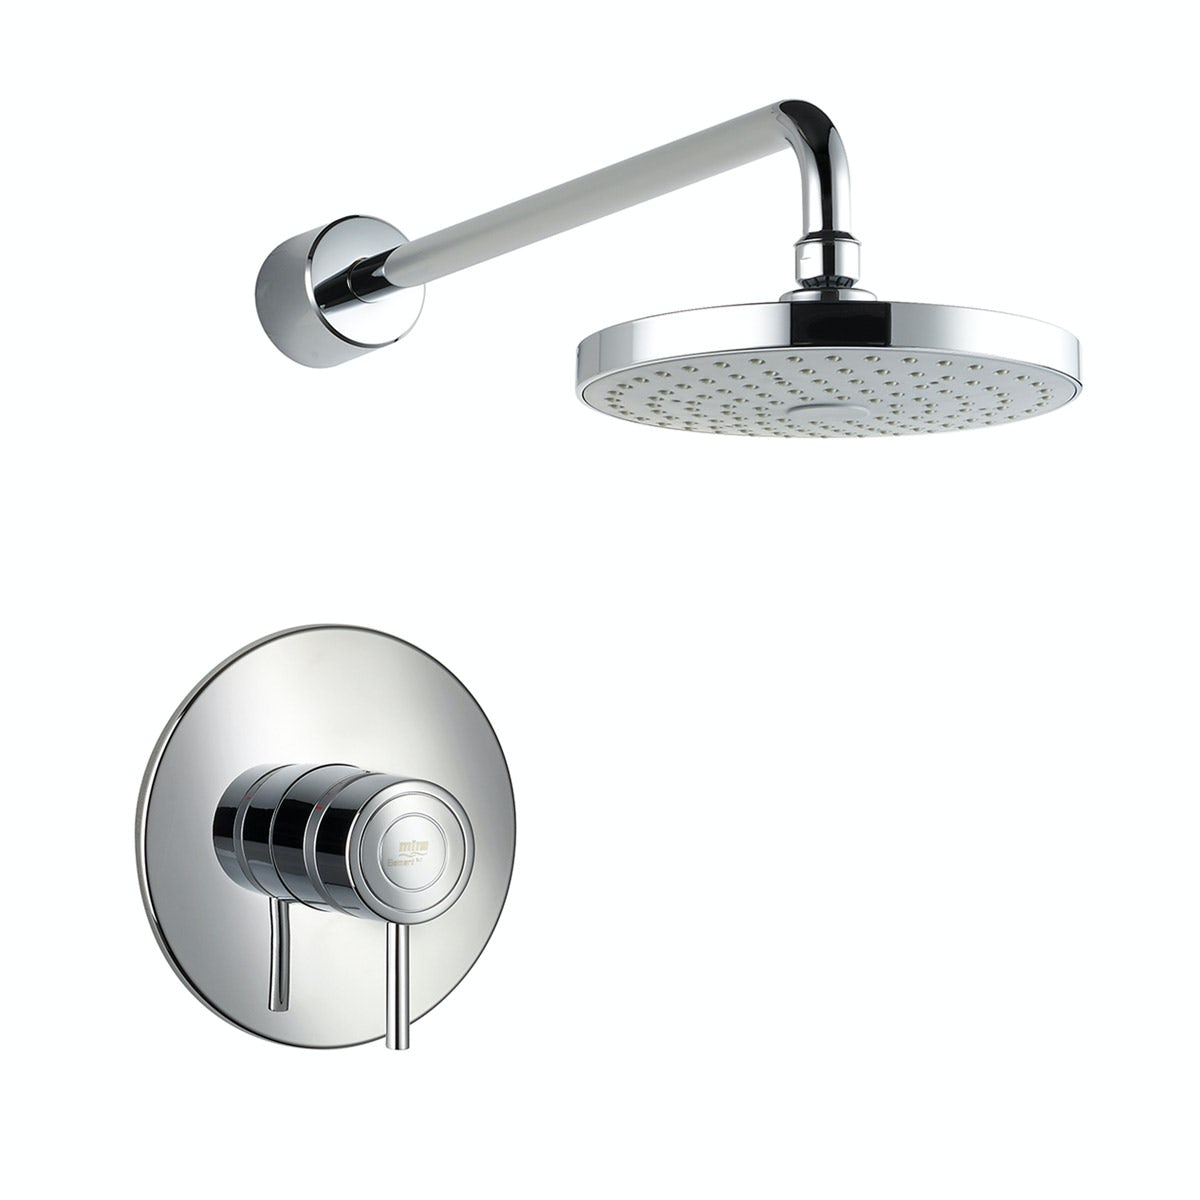 Mira Element SLT BIR thermostatic mixer shower